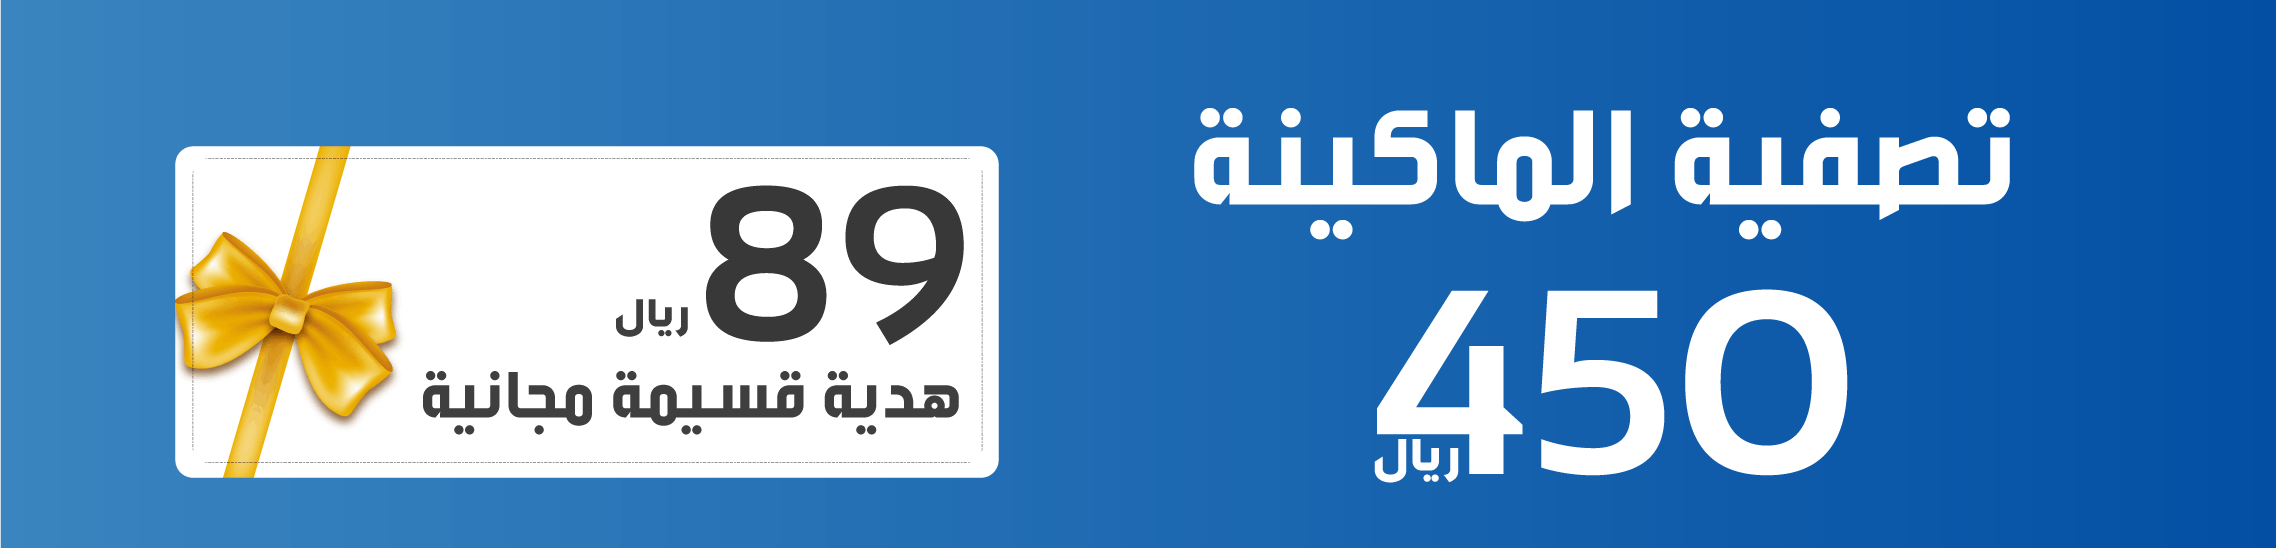 89th Saudi Arabia national day special offer